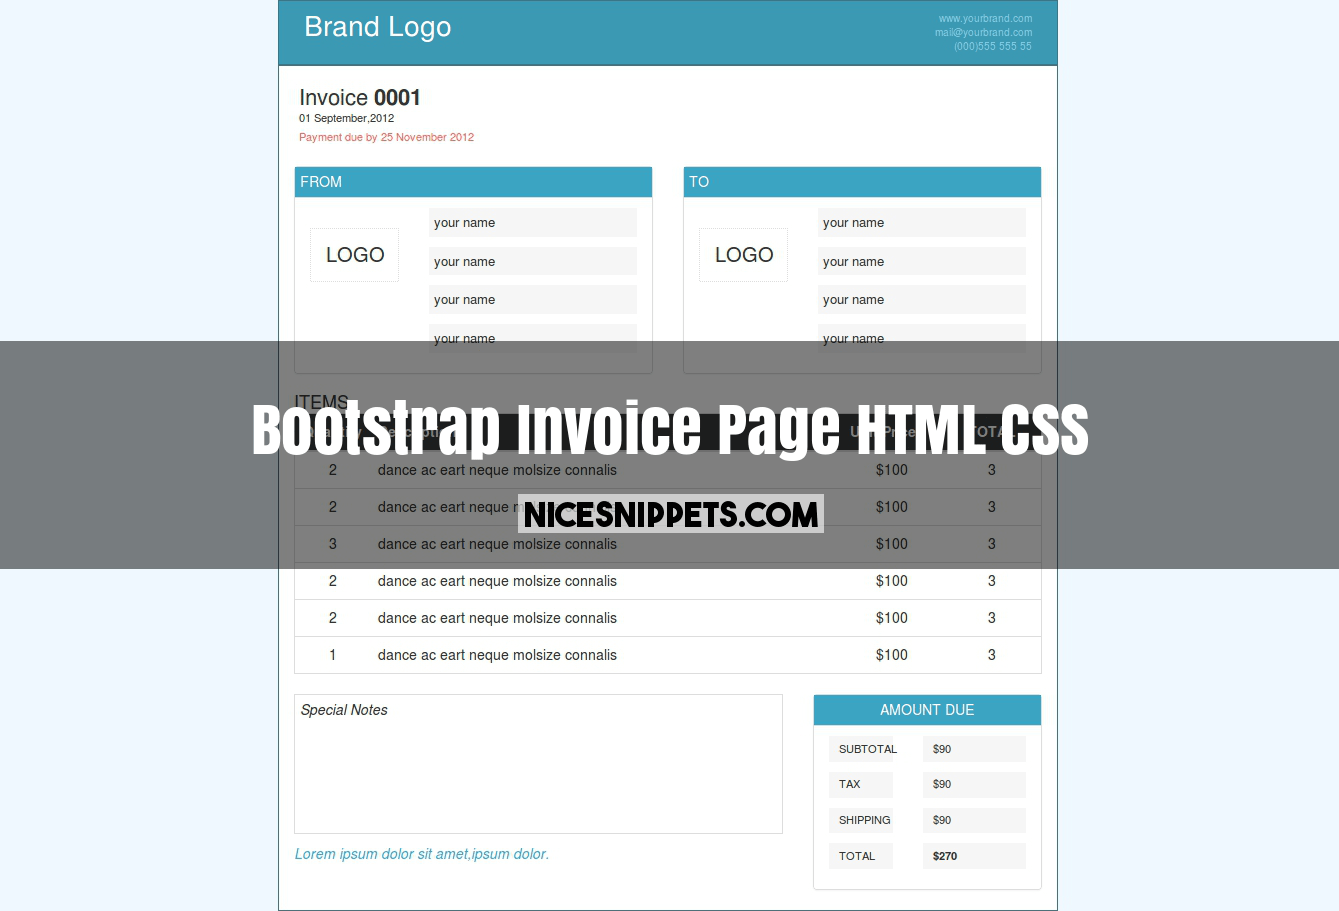 Invoice Page Design Using Html Css And Bootstrap